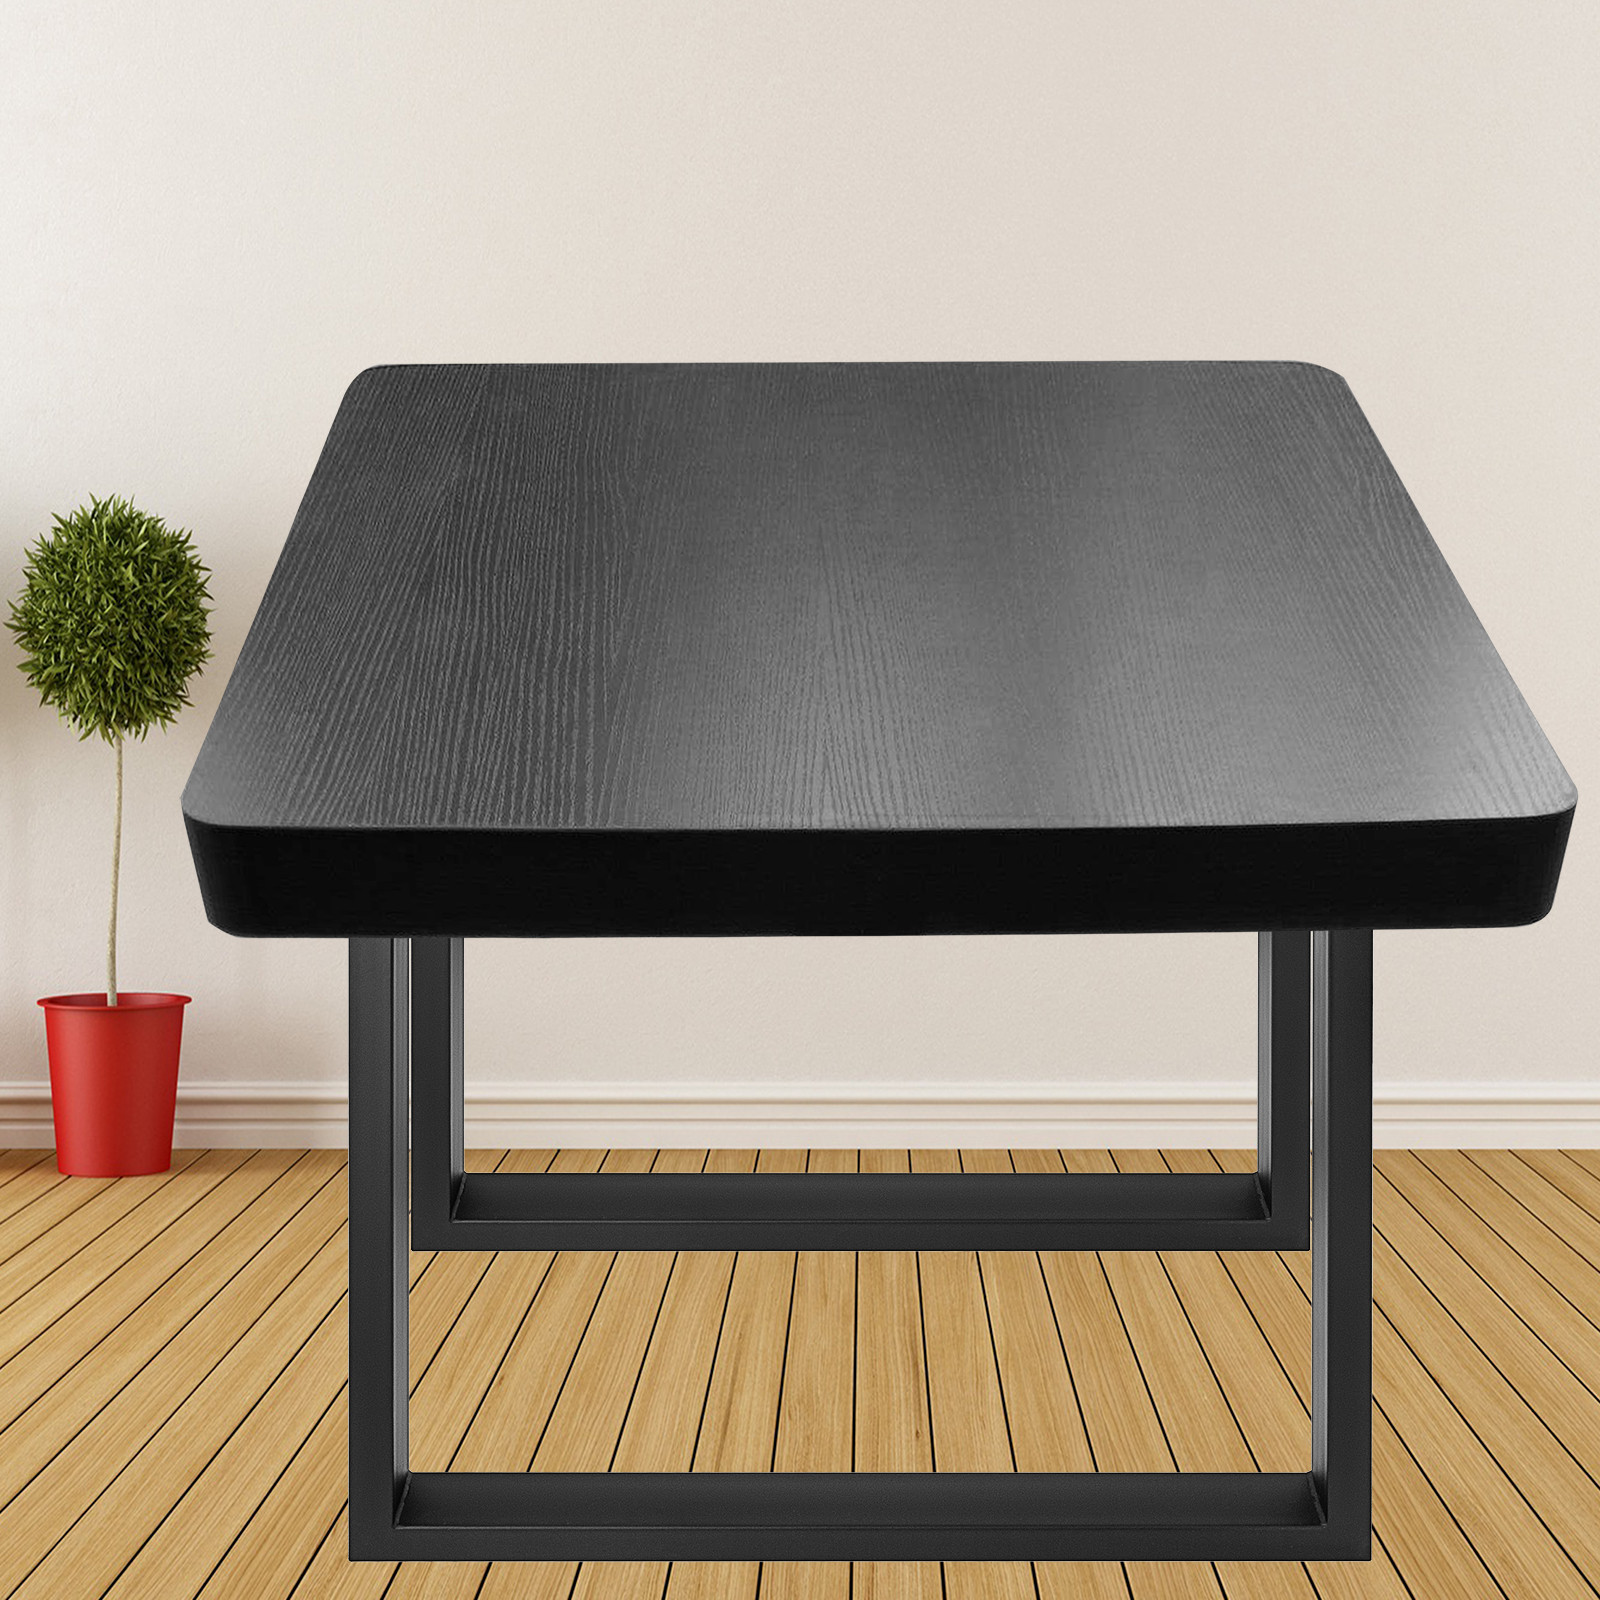 2X-Table-Legs-Black-Dining-Table-Leg-Heavy-Duty-Computer-Desk-Legs-Rectangle thumbnail 47